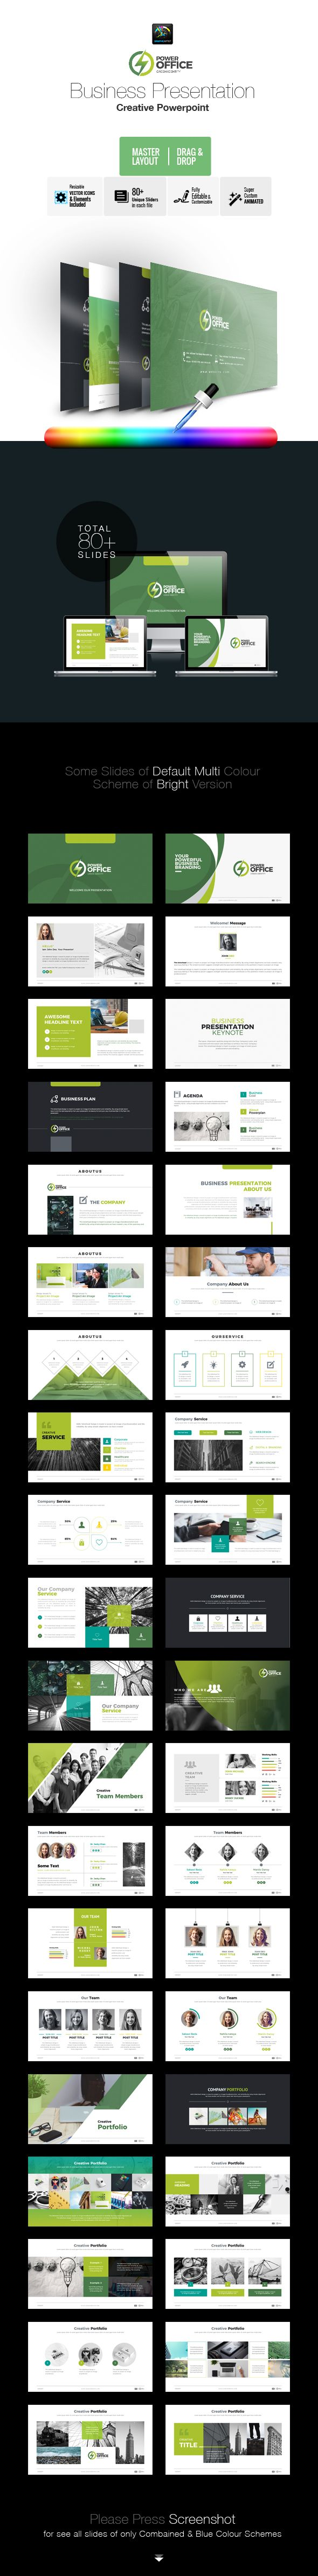 729 Best Powerpoint Templates Images On Pinterest Font Logo Fonts